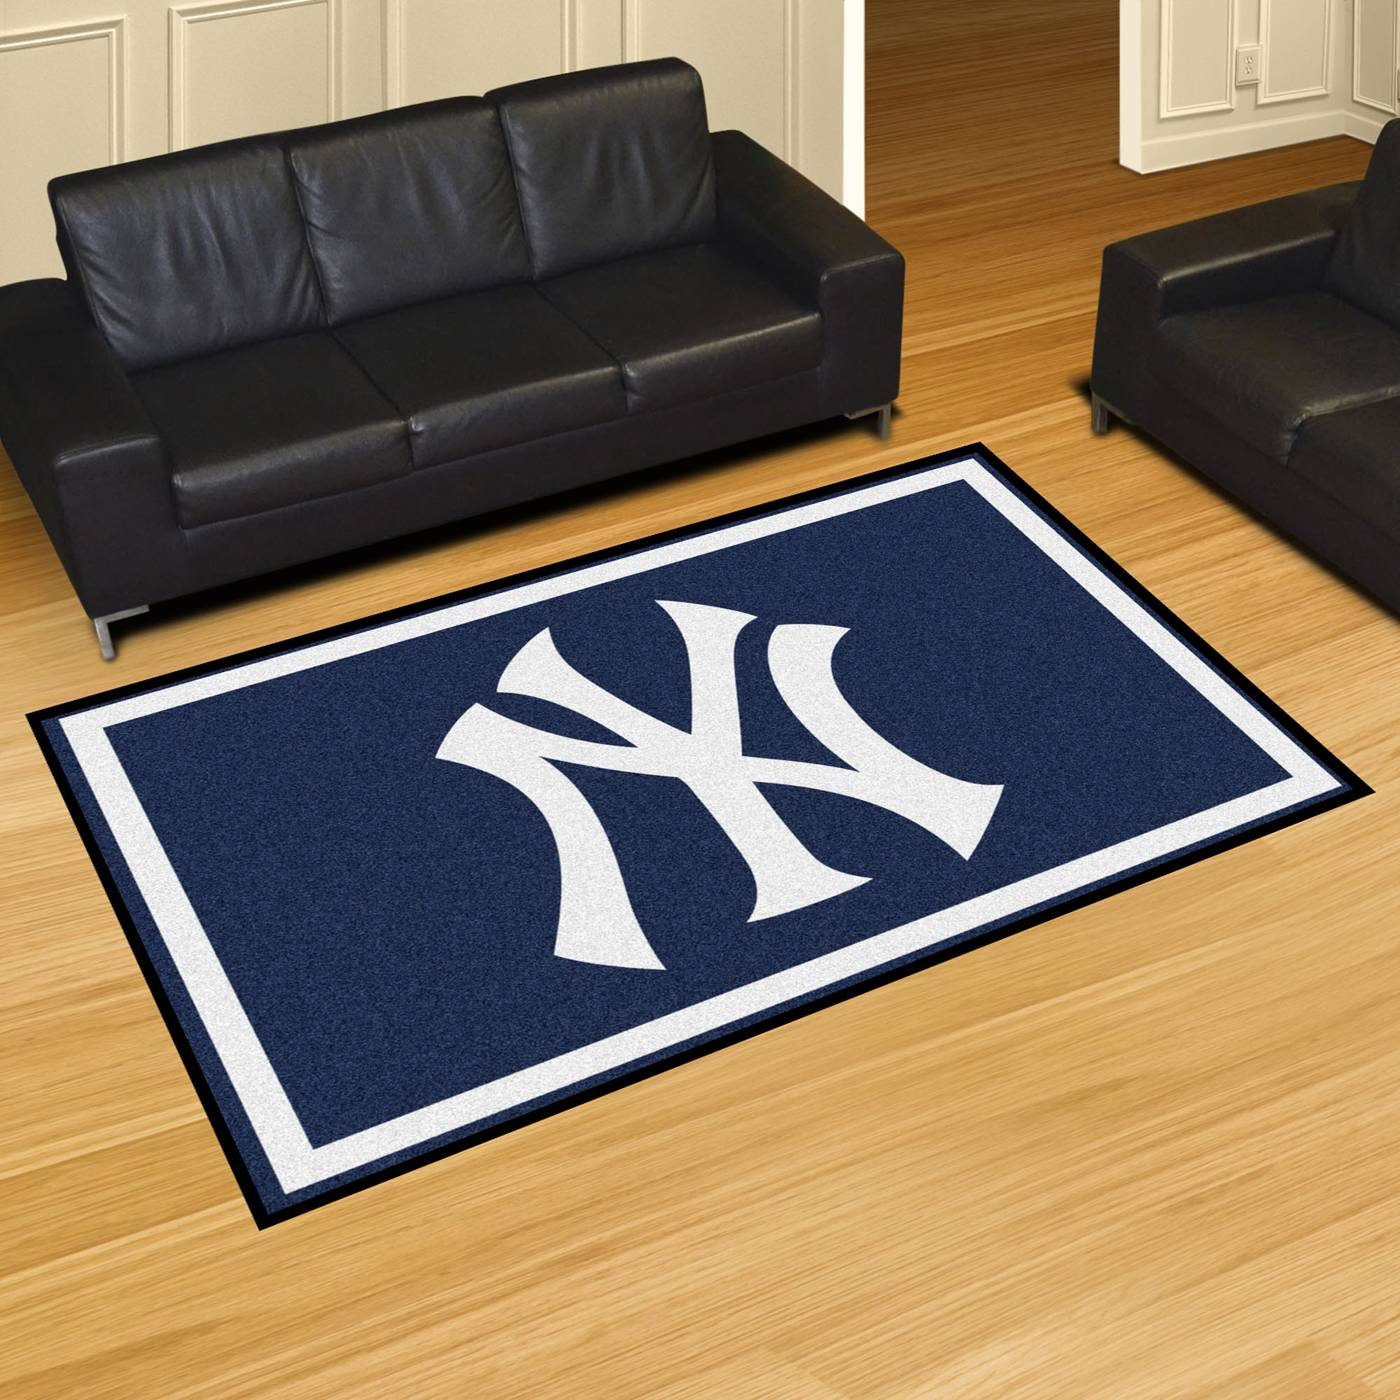 New york yankees 5 39 x 8 39 area rug for Area rugs new york